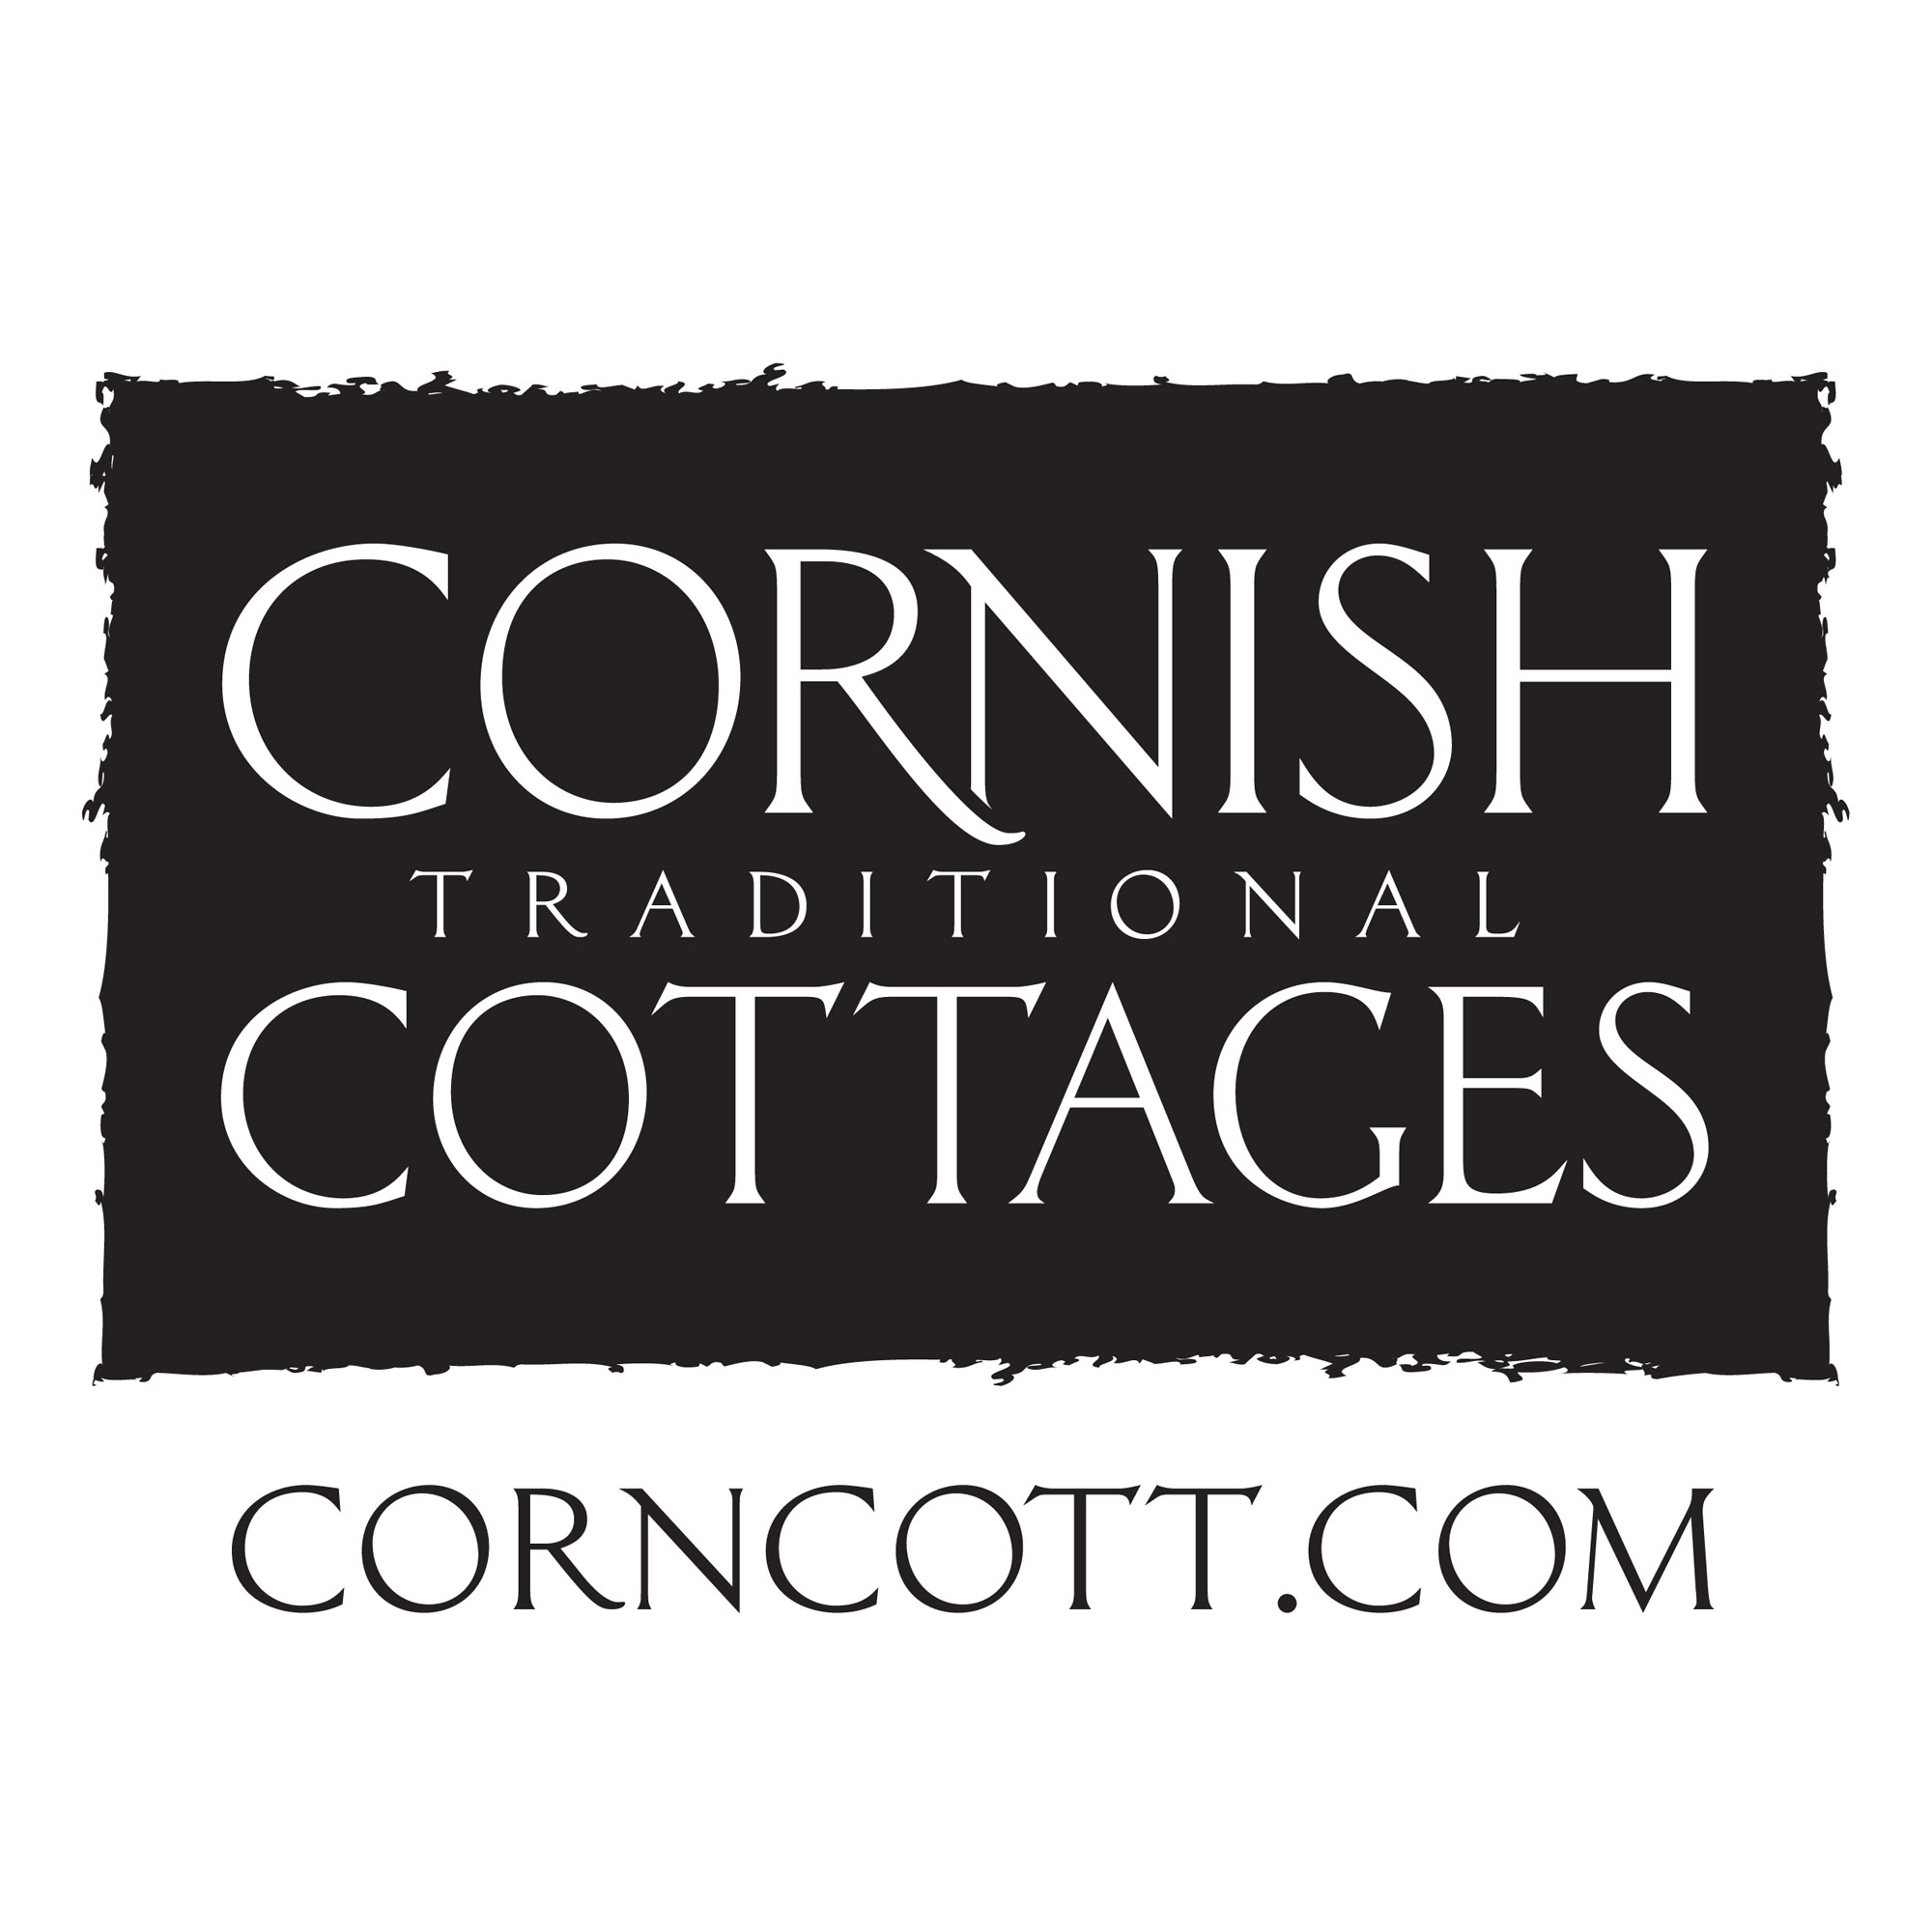 Cornish Traditional Cottages' Photo Competition - logo